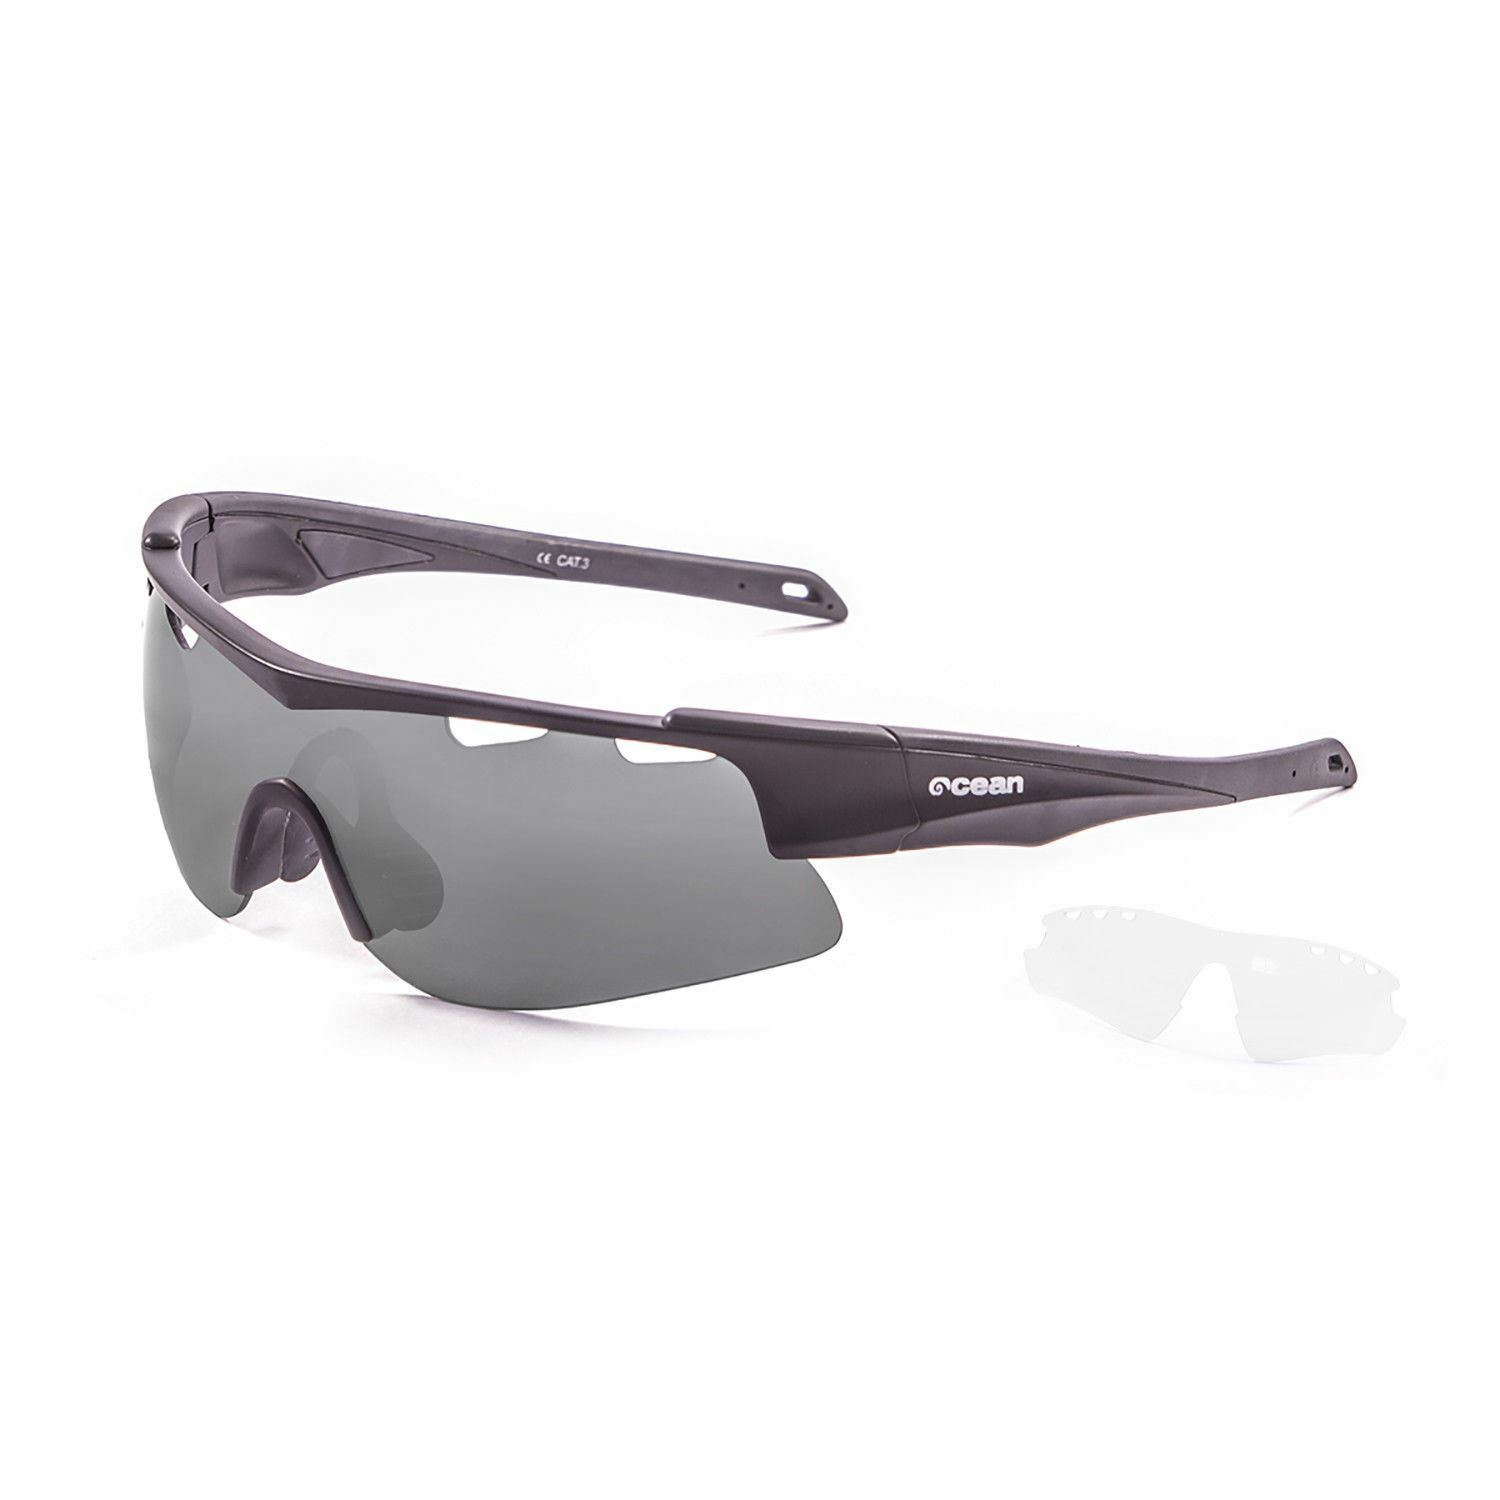 OCEAN Alpine Polarized Sunglasses Performance Sports Unisex 100% UV Resistant